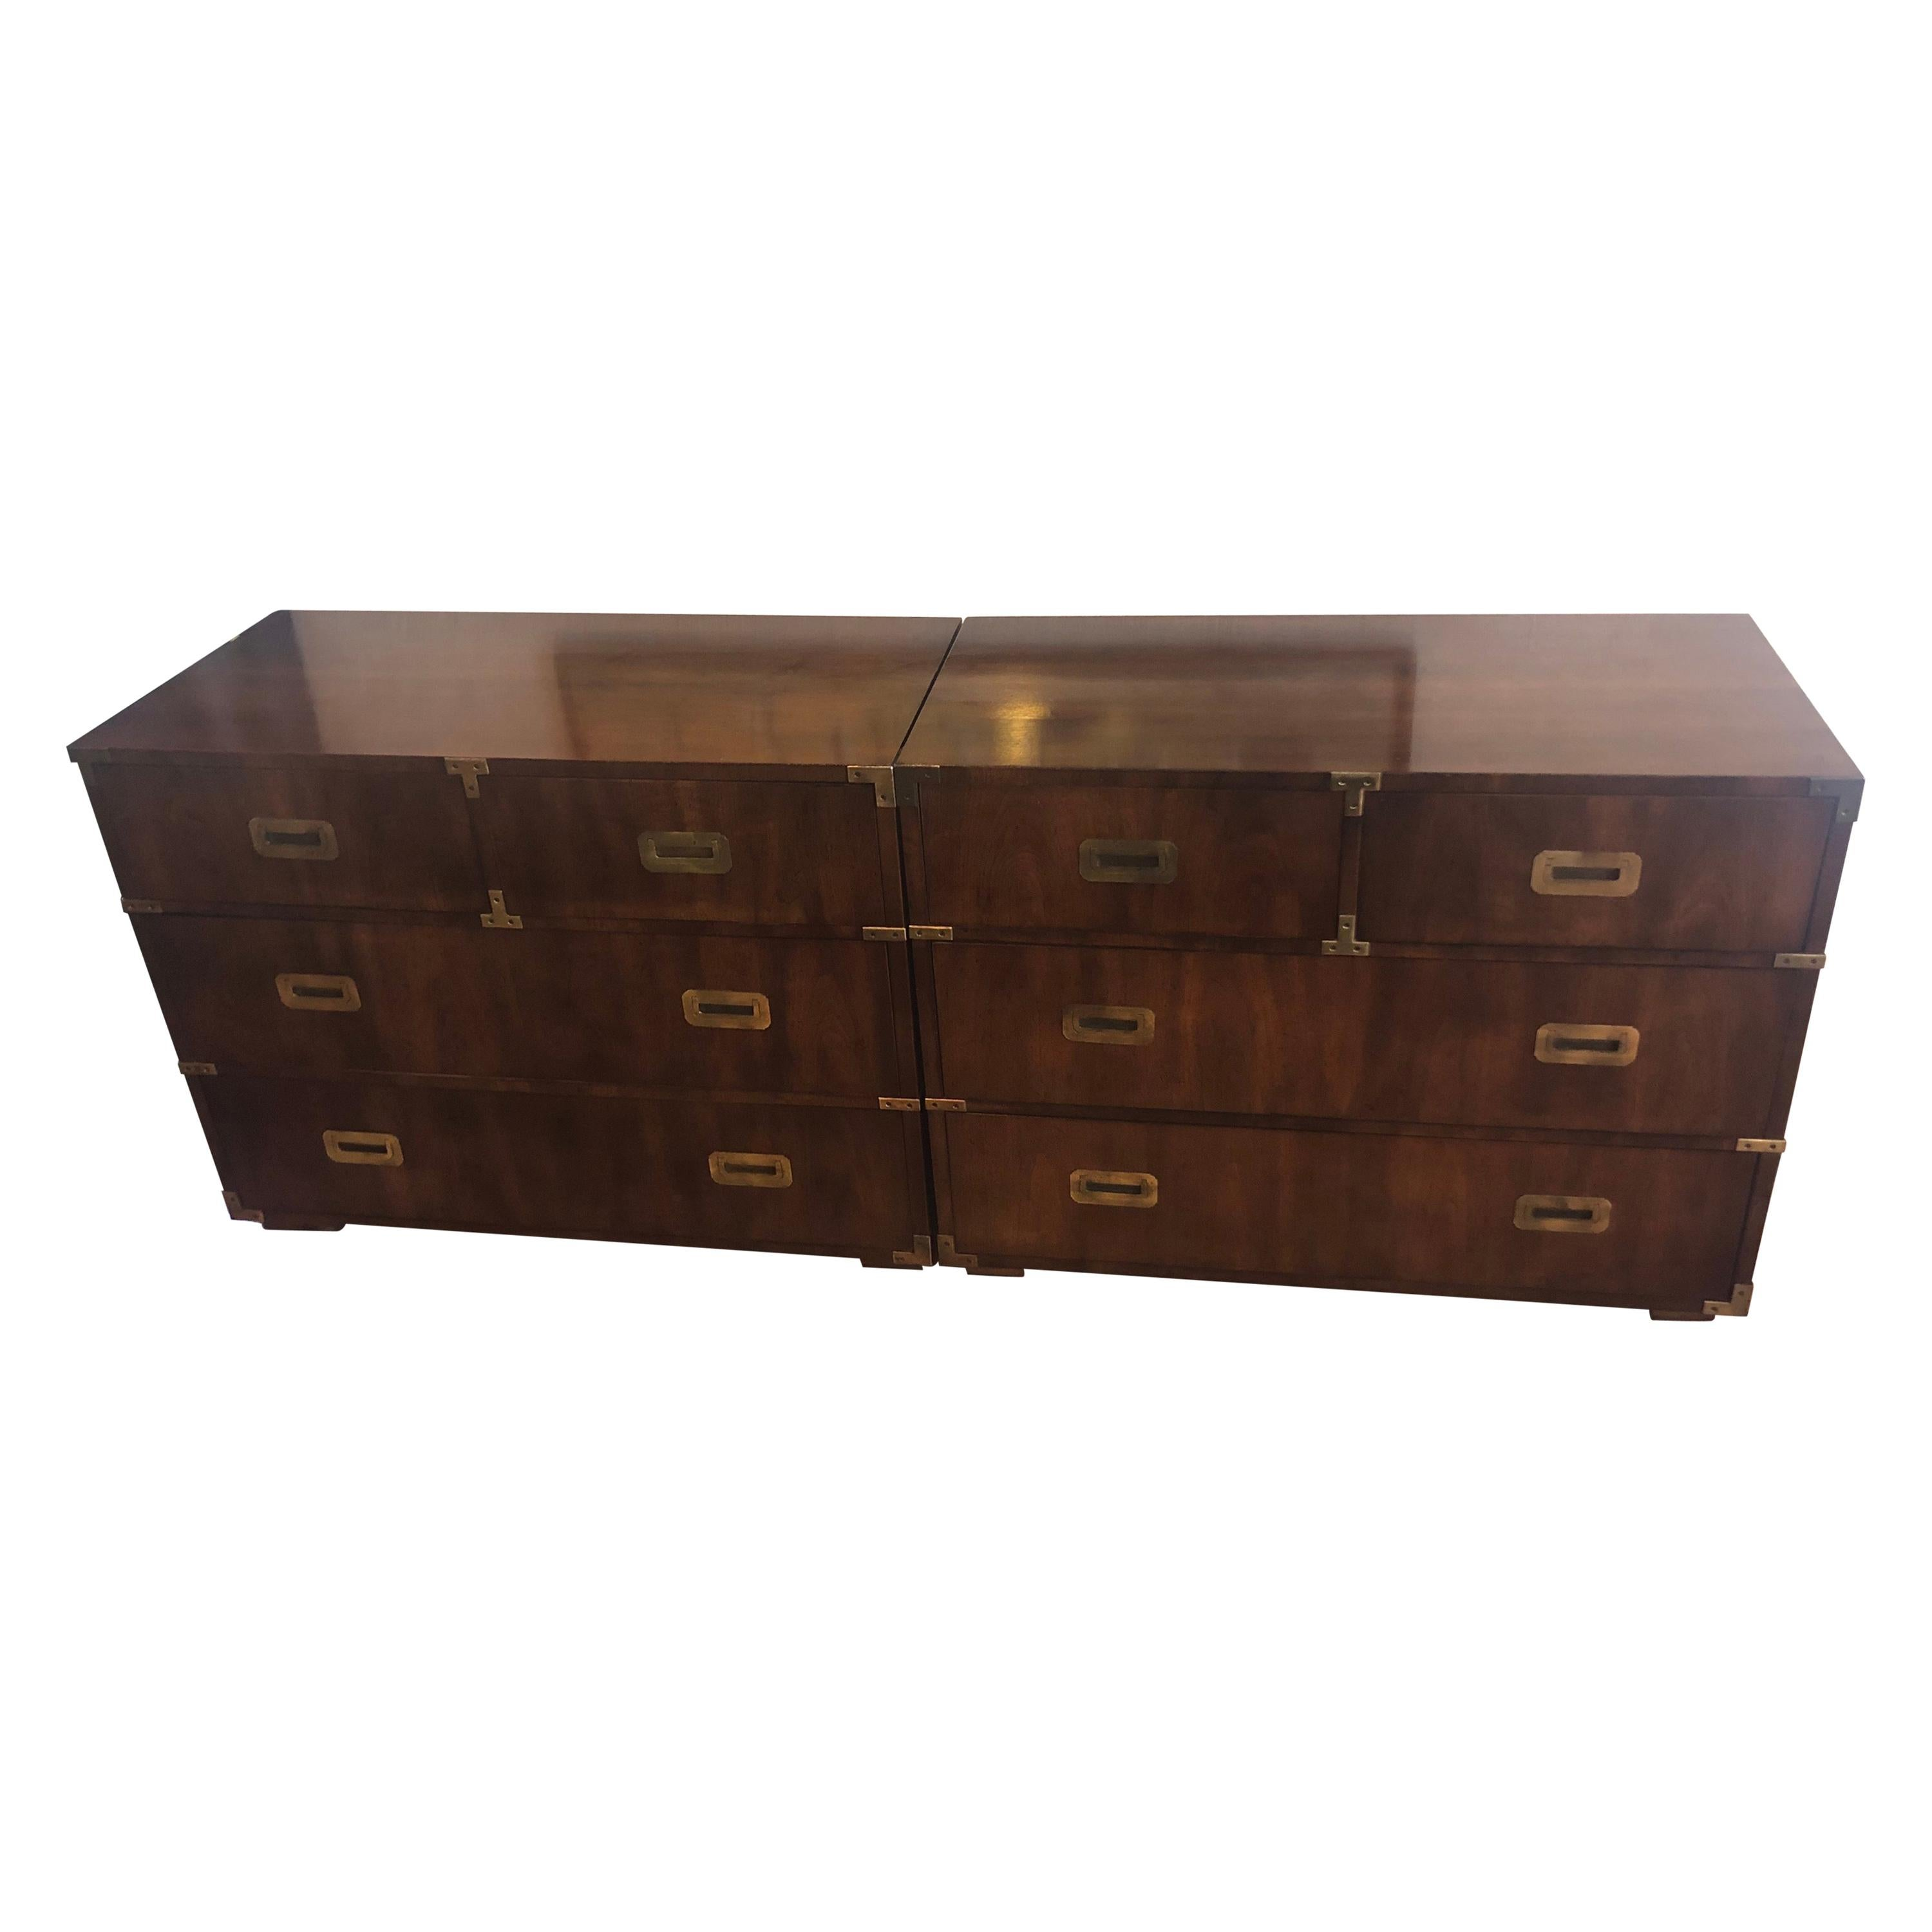 Pair of Mid Century Modern Campaign Dressers by Henredon